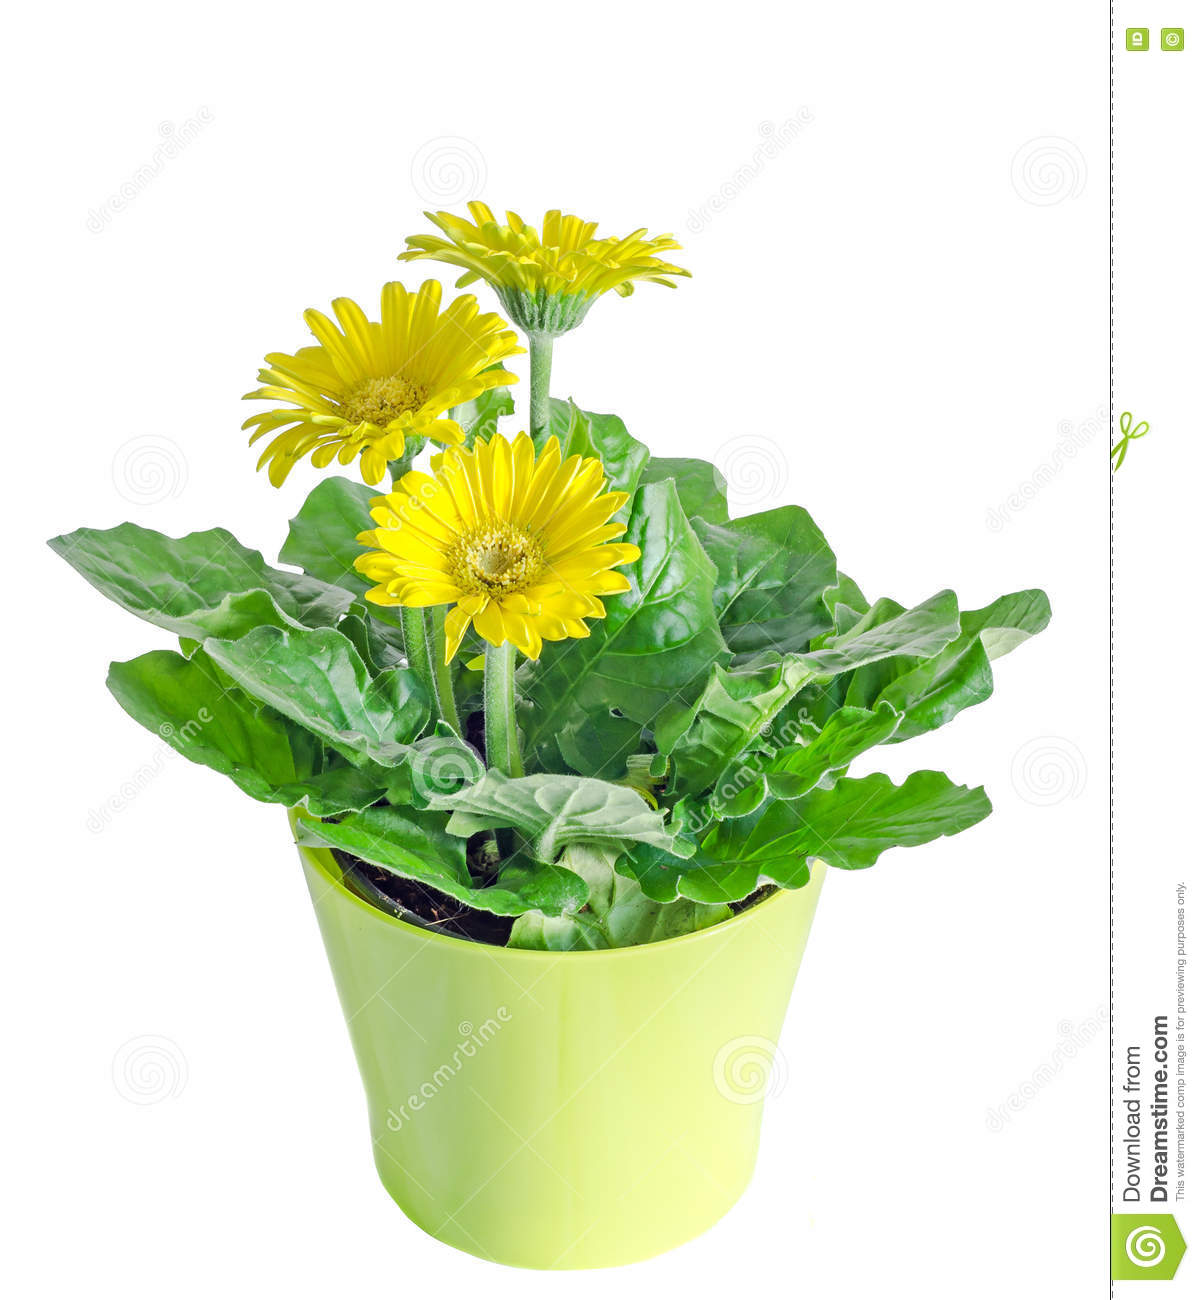 le gerbera jaune fleurit dans un vase pot de fleurs feuilles de vert fin photo stock image. Black Bedroom Furniture Sets. Home Design Ideas